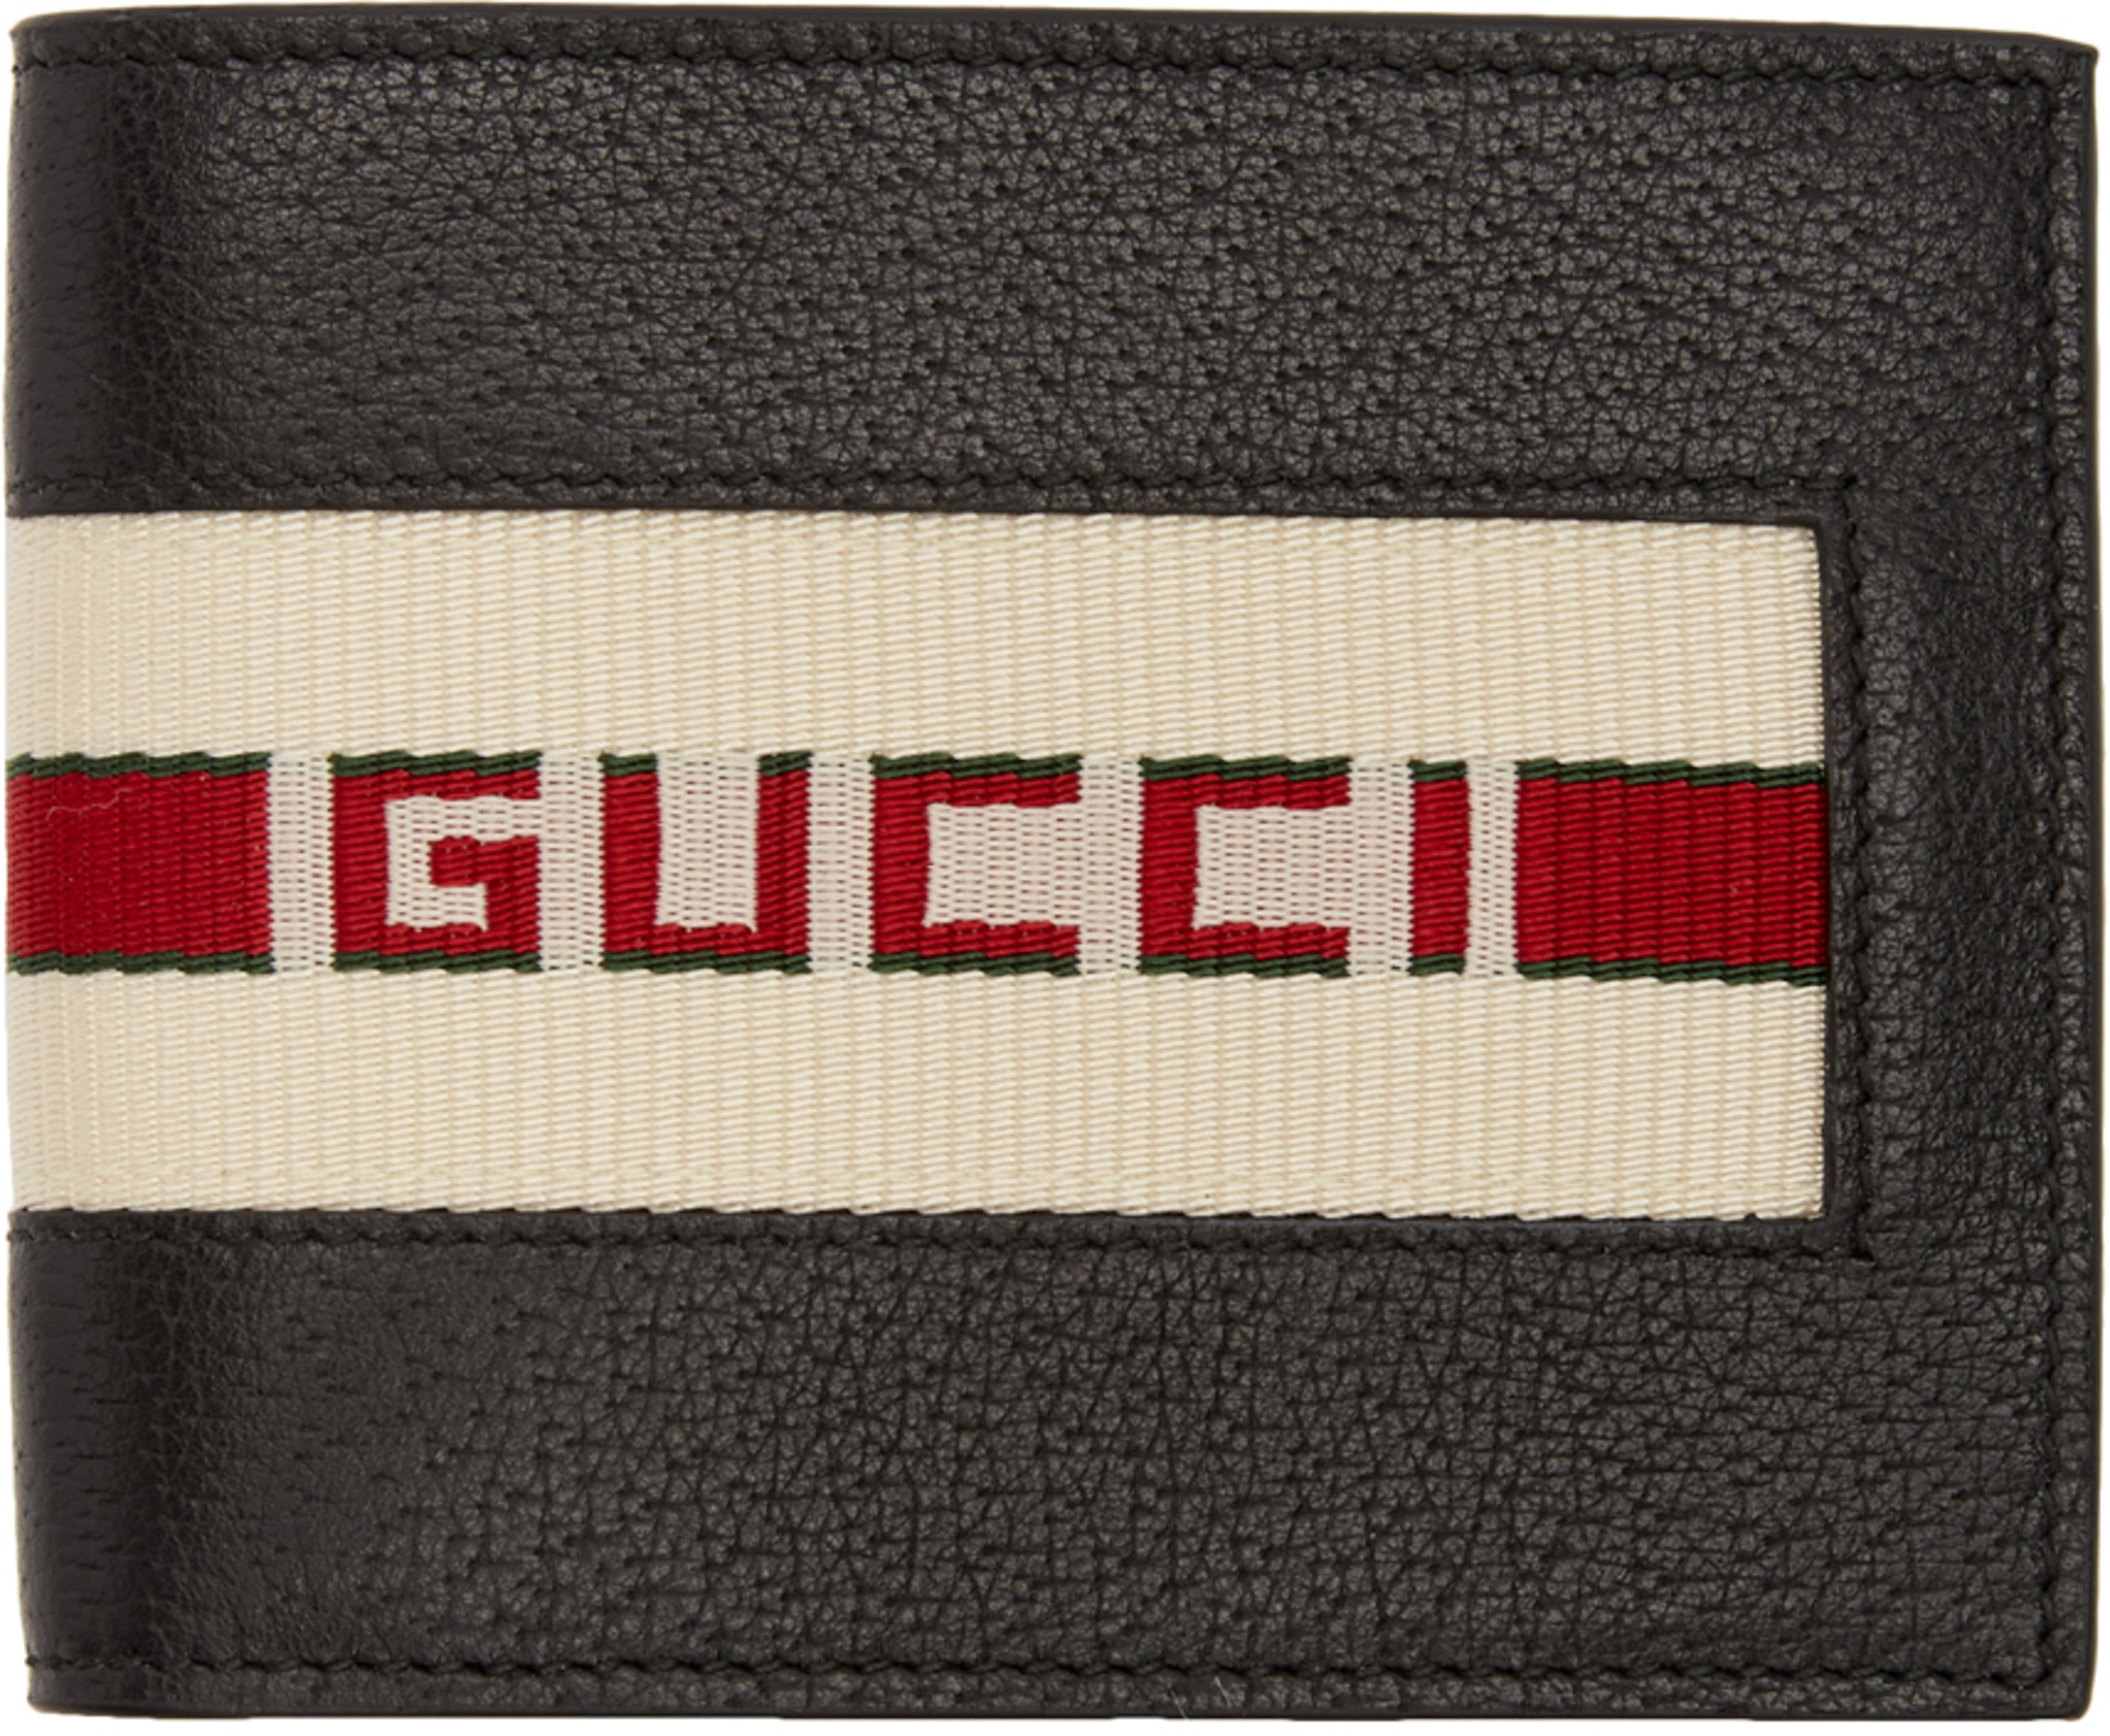 ae8e06eac63 Gucci wallets for Men